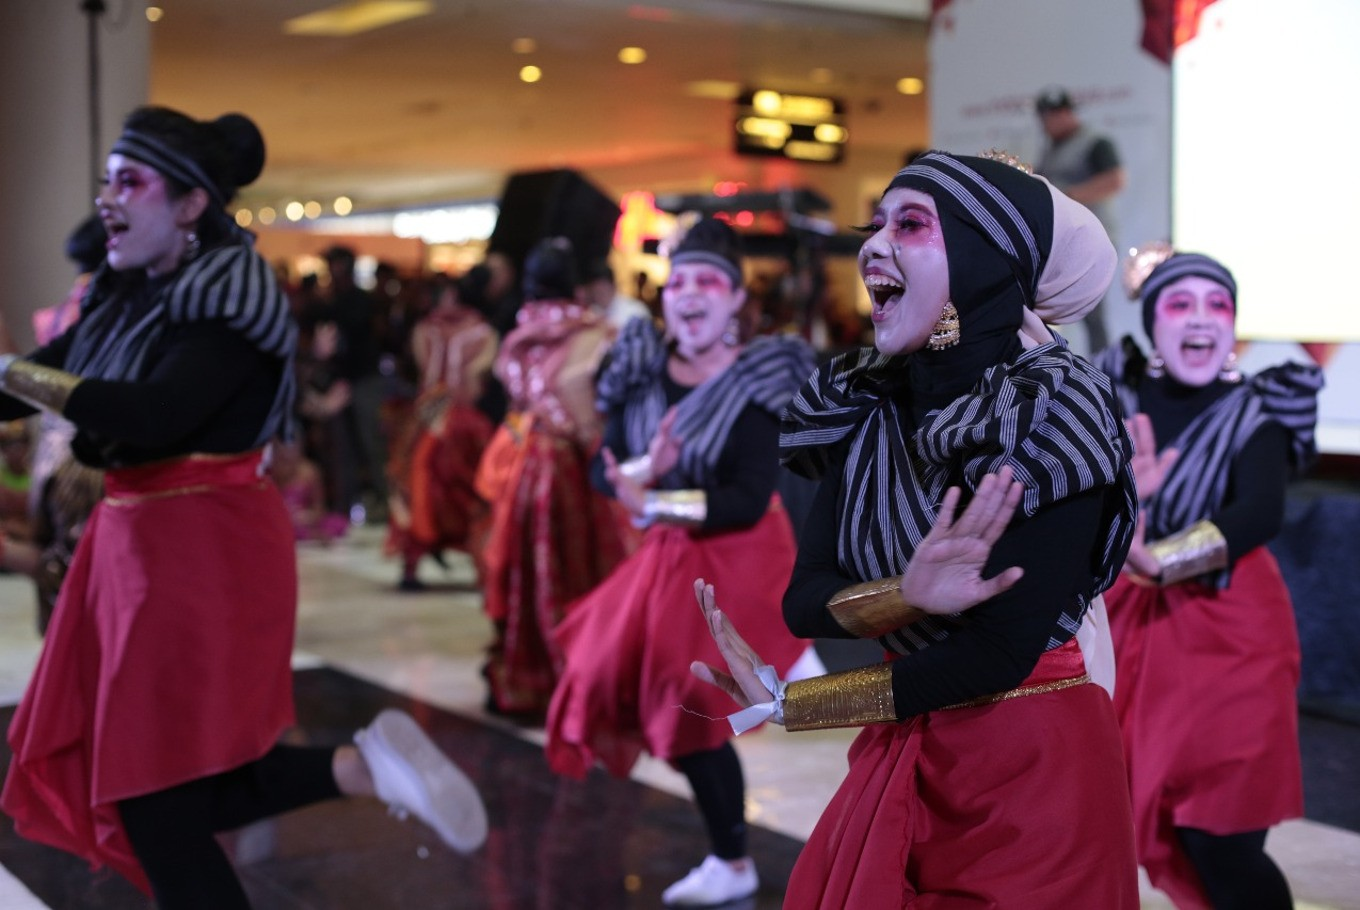 Participants show their enthusiasm during Indonesia Menari 2017 on Sunday at Grand Indonesia mall, Central Jakarta. This year's event was held in three different cities, namely Jakarta, Surakarta in Central Java and Bandung in West Java.